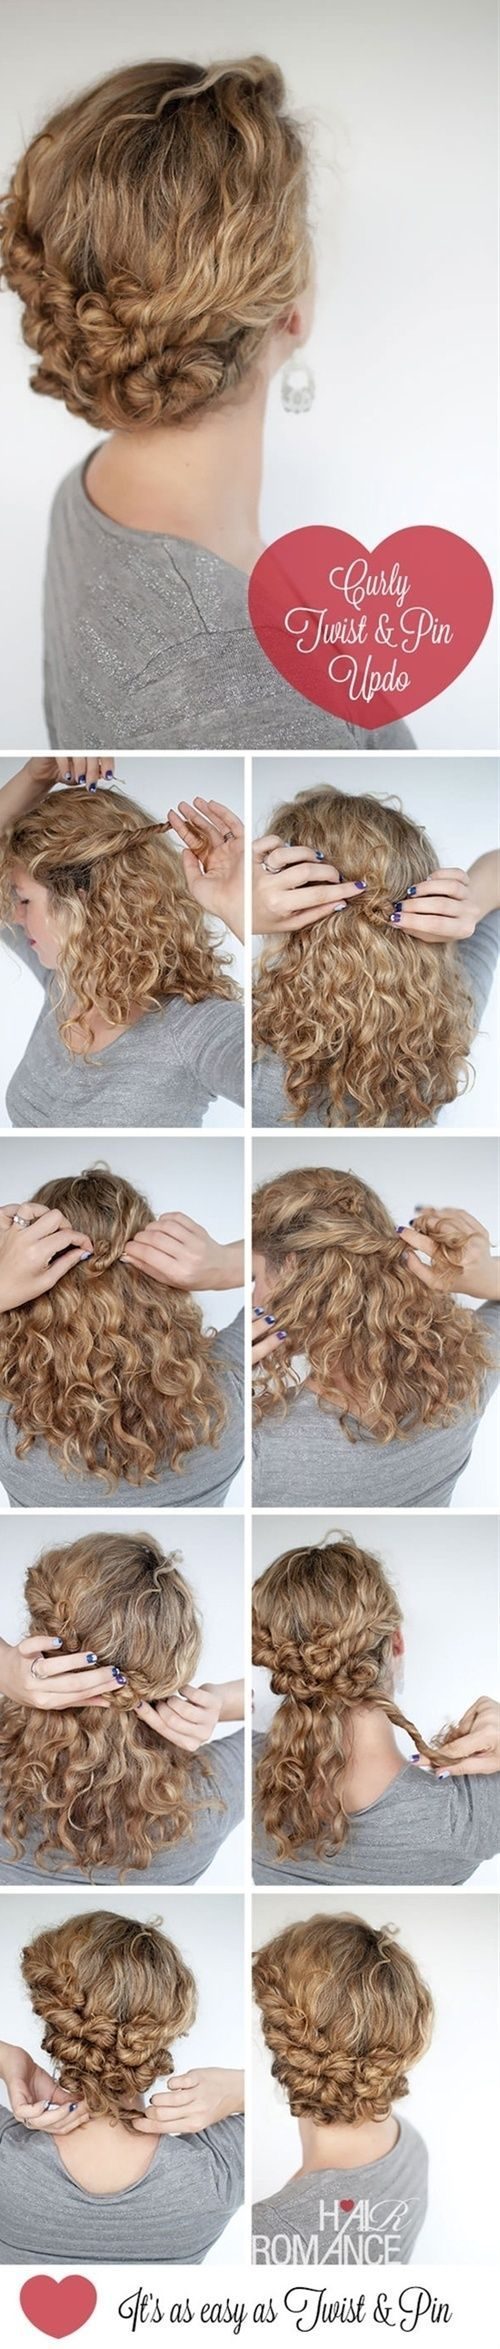 would be cute if I had curly hair